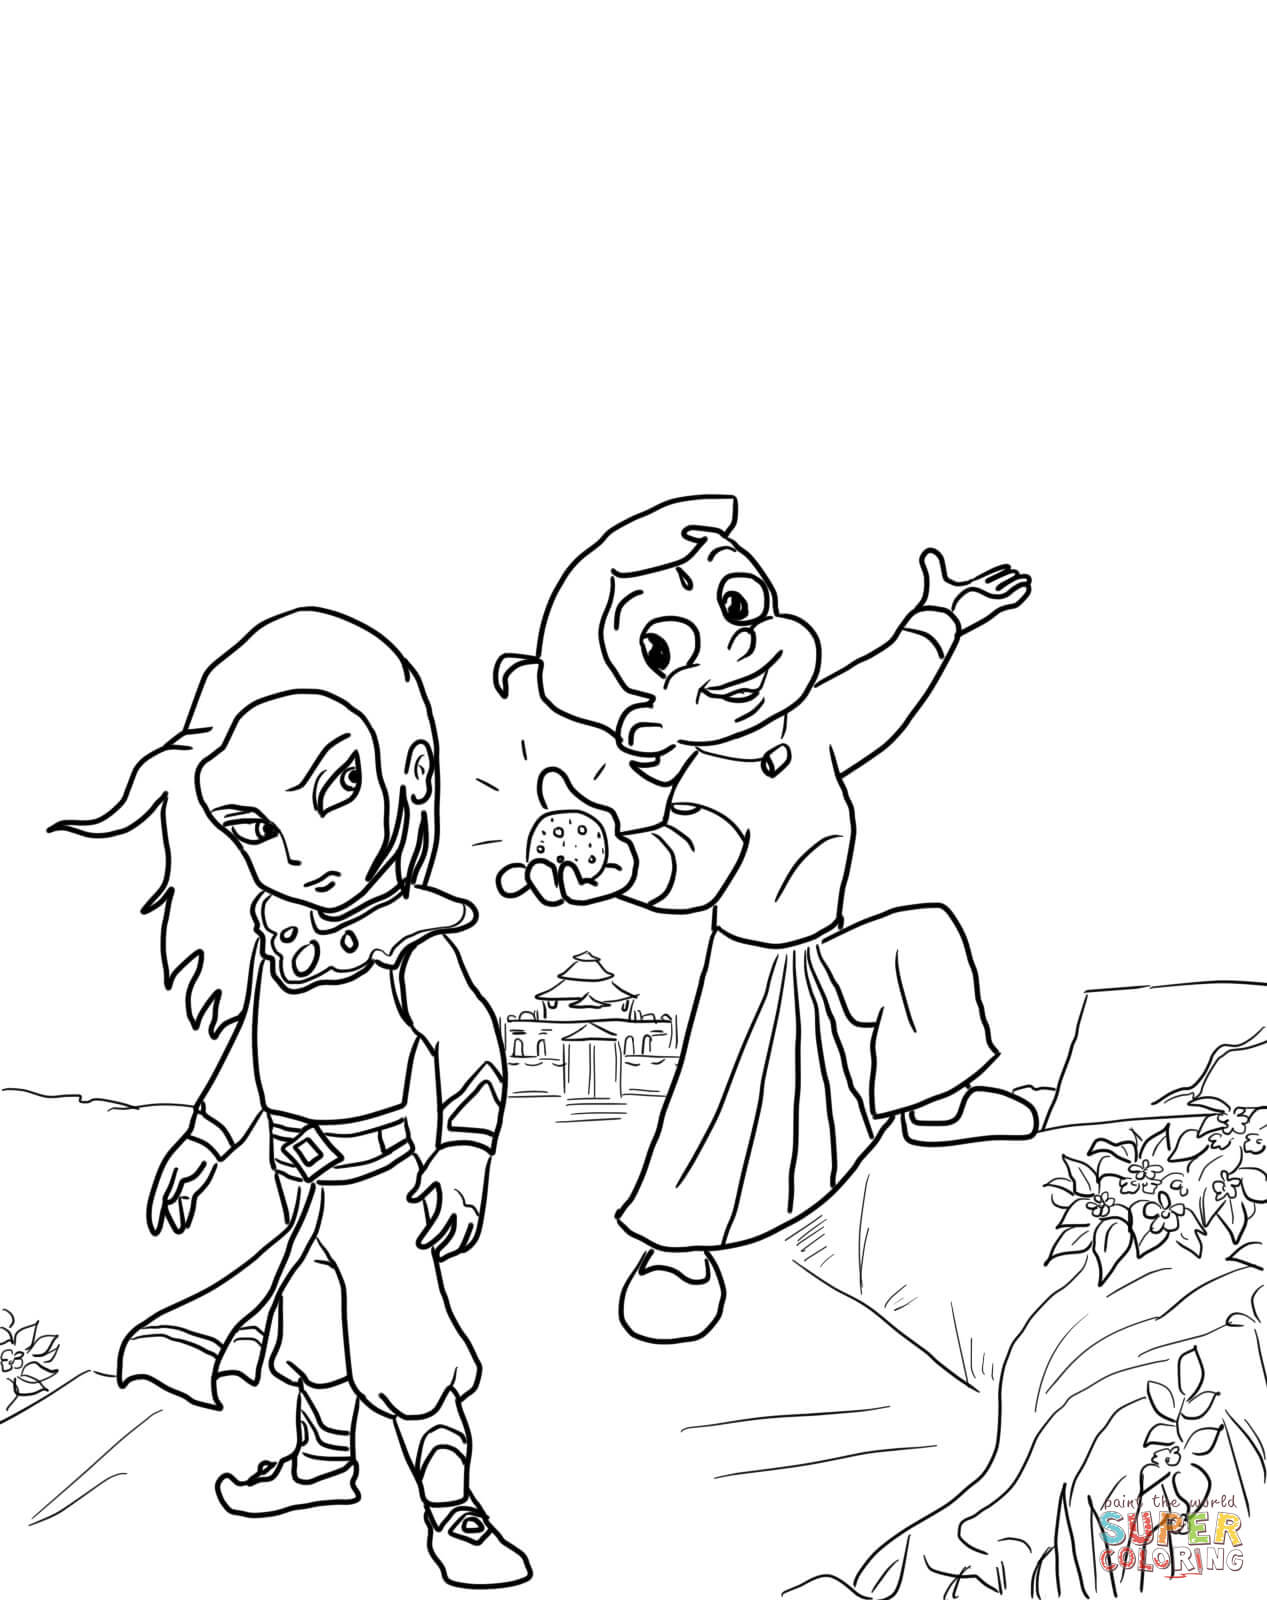 krishna pages for coloring - photo#28